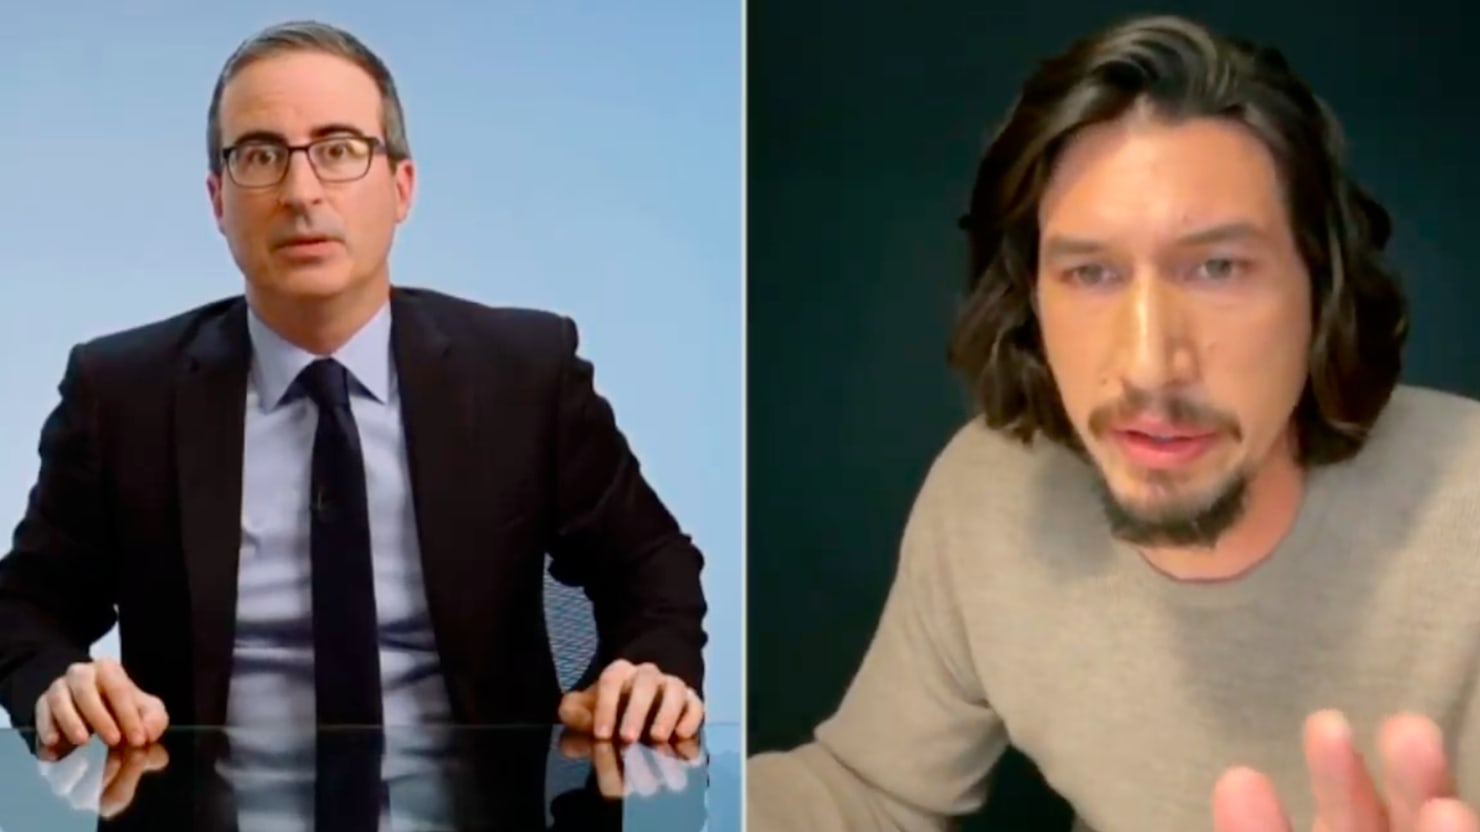 Adam Driver Angrily Confronts John Oliver Over His Sexual Come-Ons